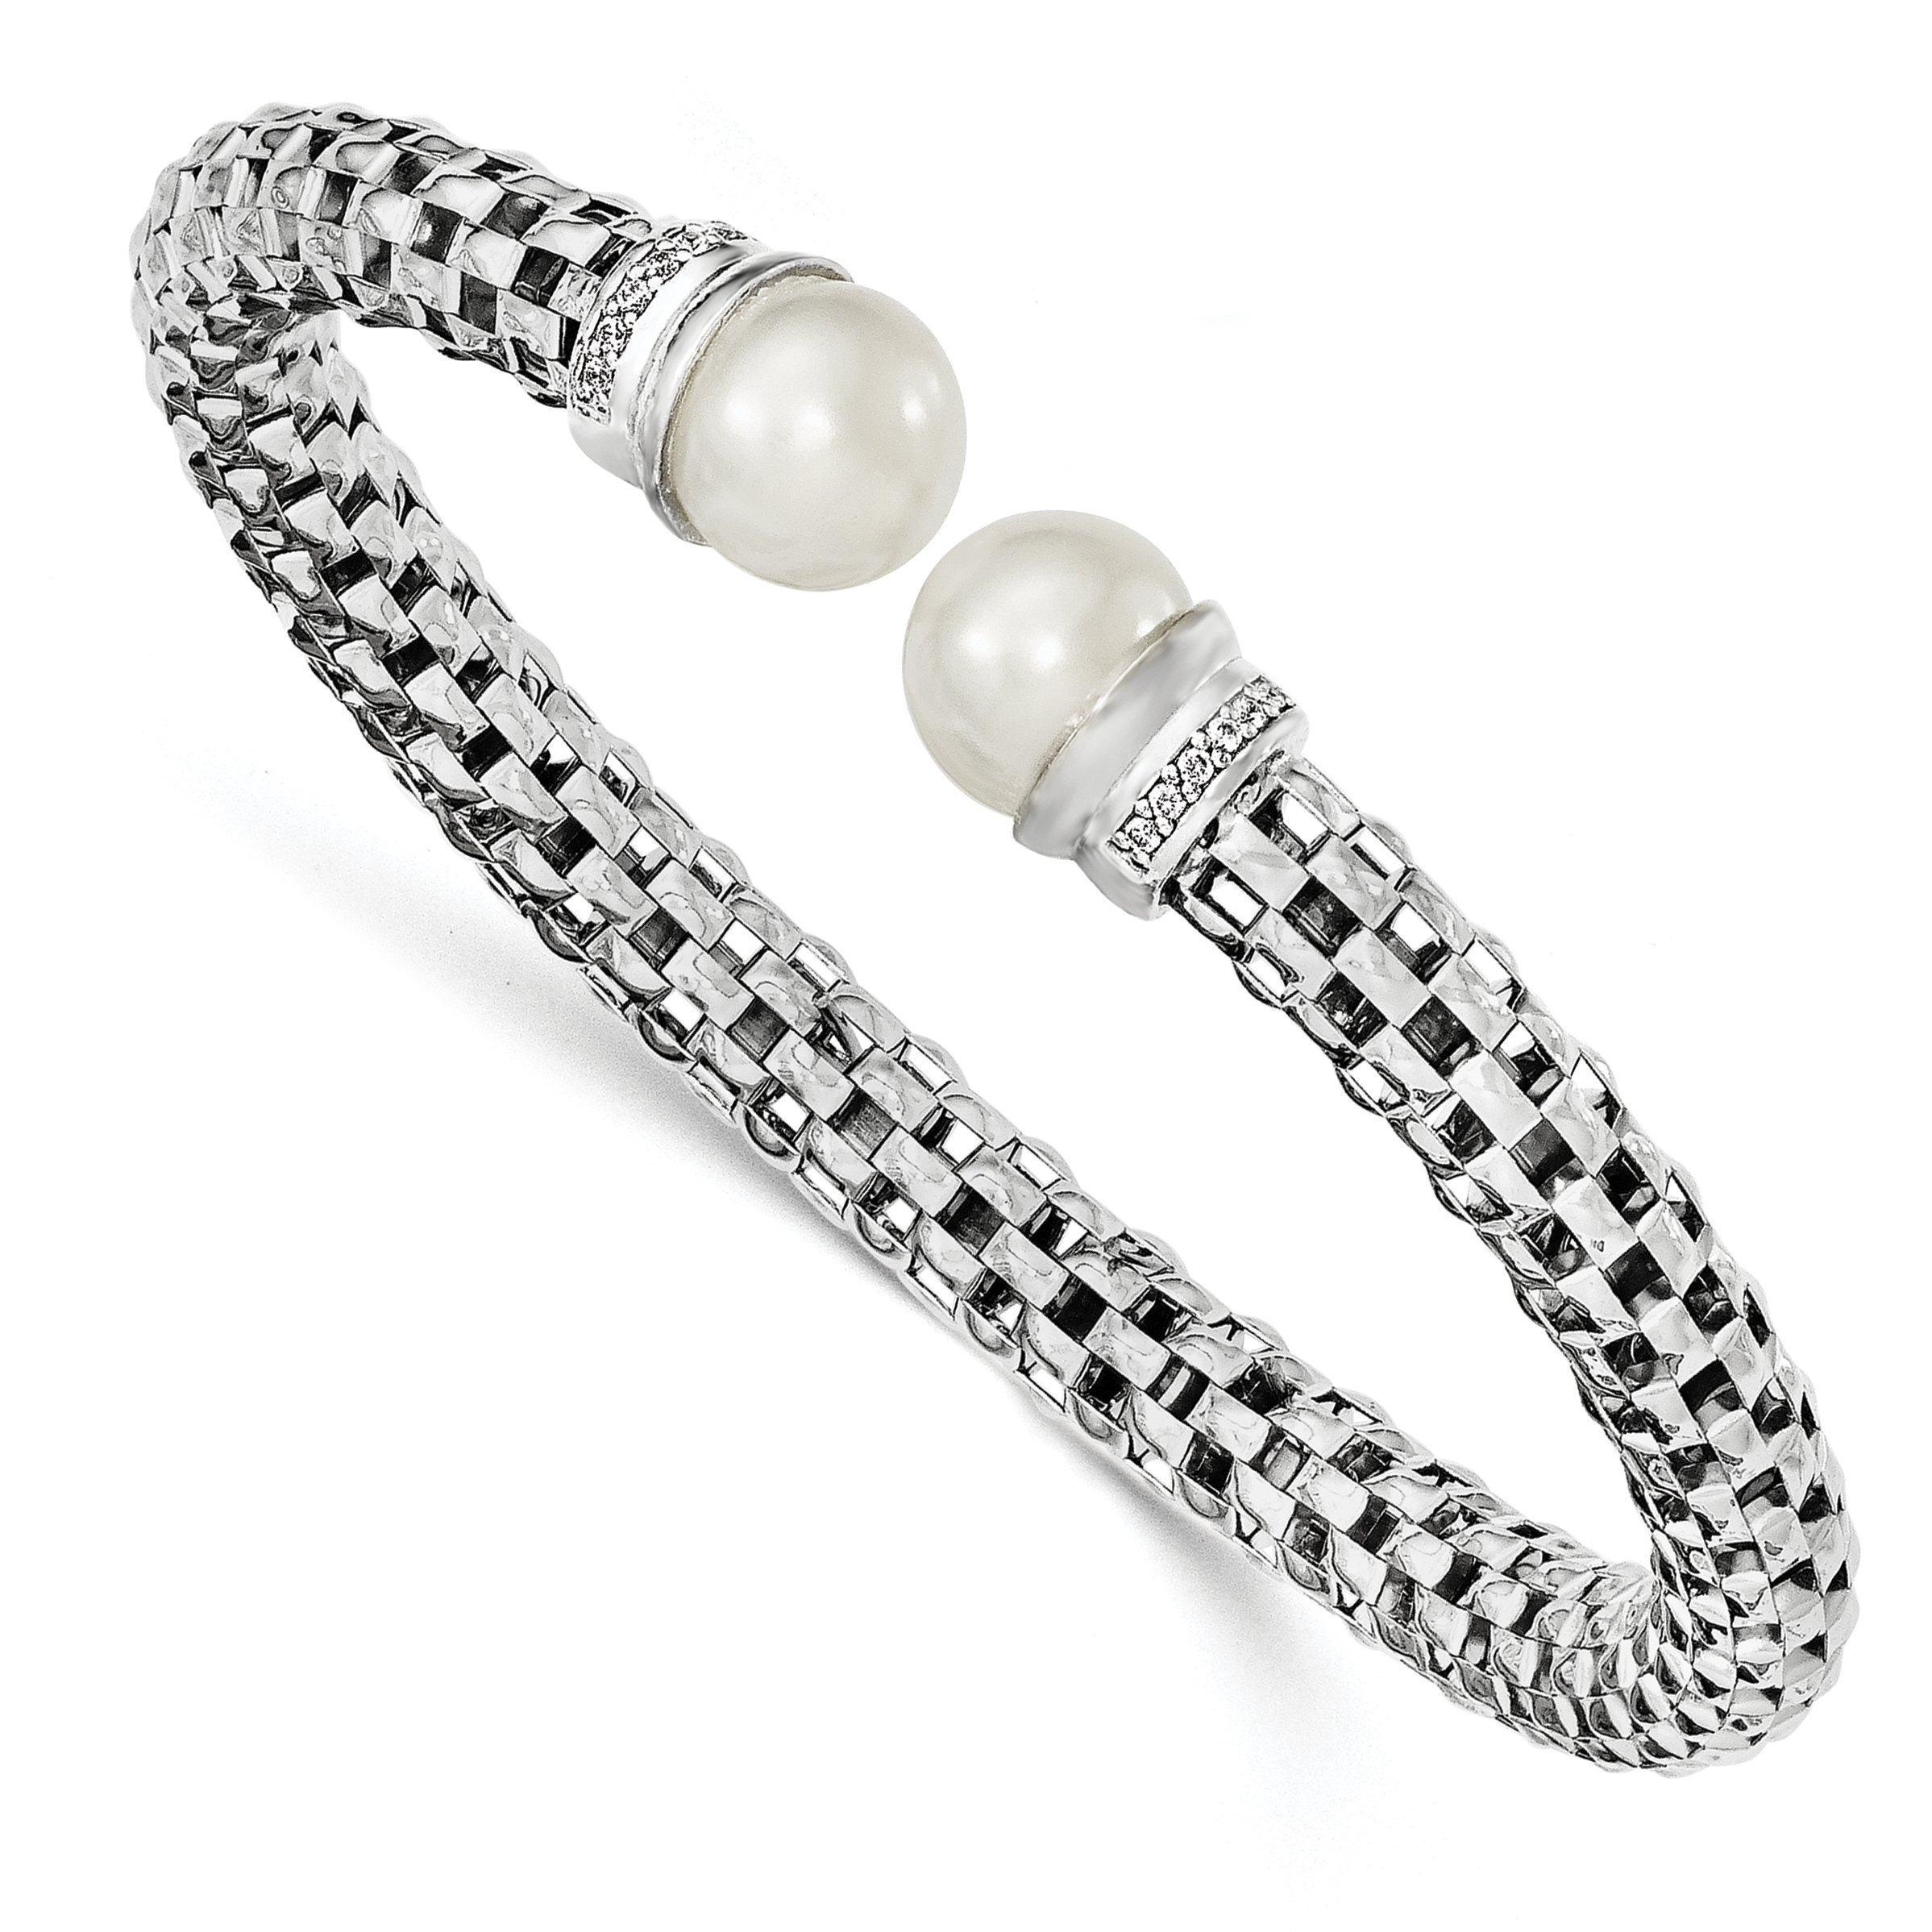 ICE CARATS 925 Sterling Silver Rhod Plated Freshwater Cultured Pearl Cubic Zirconia Cz Cuff Bangle Bracelet Expandable Stackable For Women